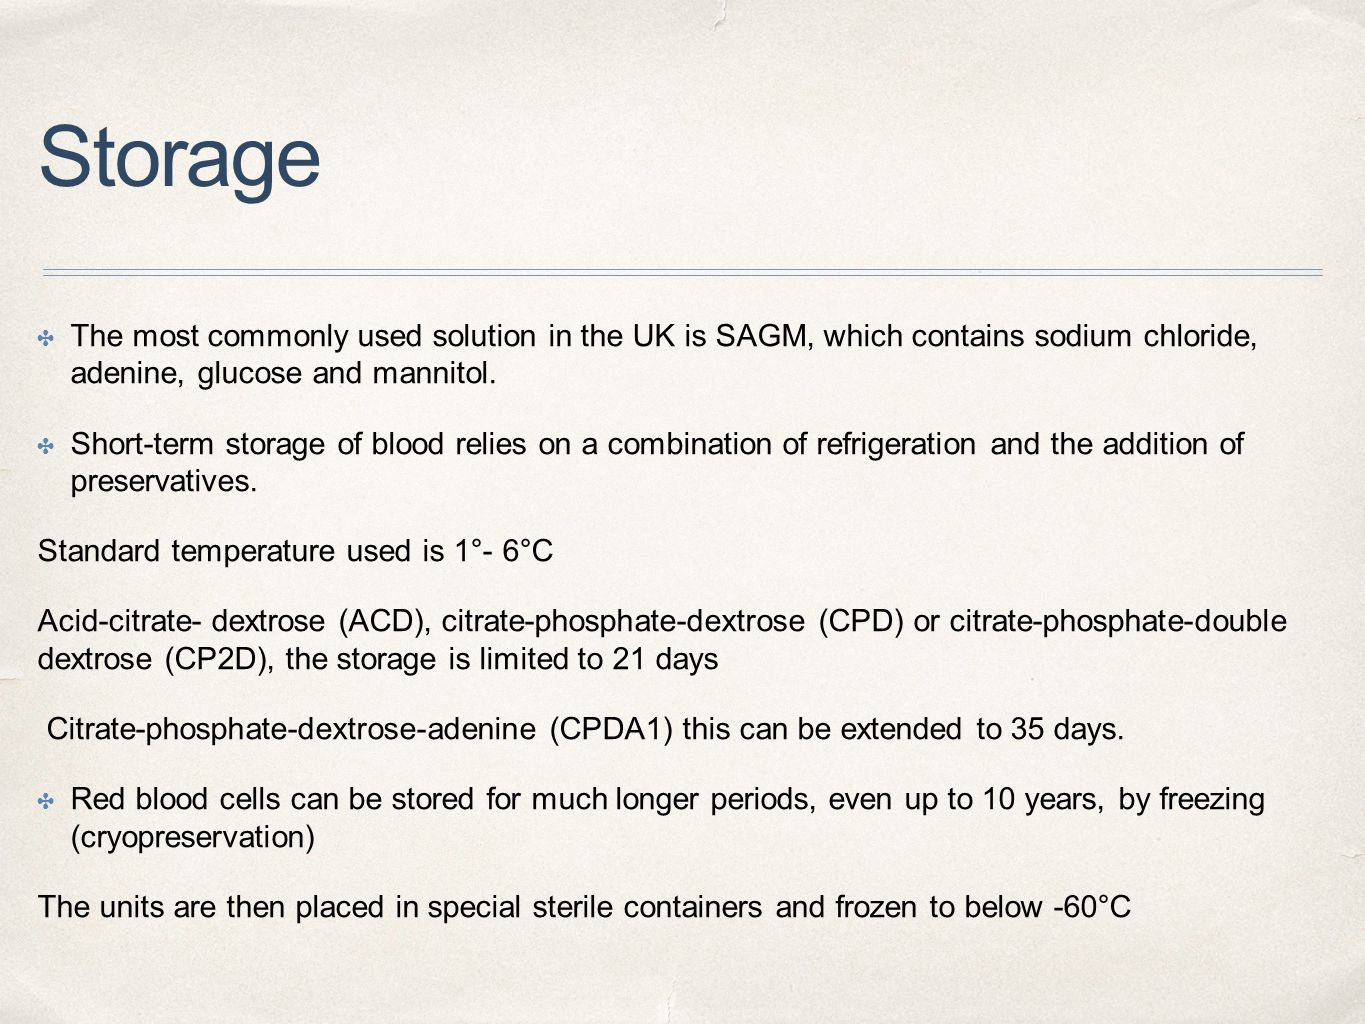 Storage The most commonly used solution in the UK is SAGM, which contains sodium chloride, adenine, glucose and mannitol.